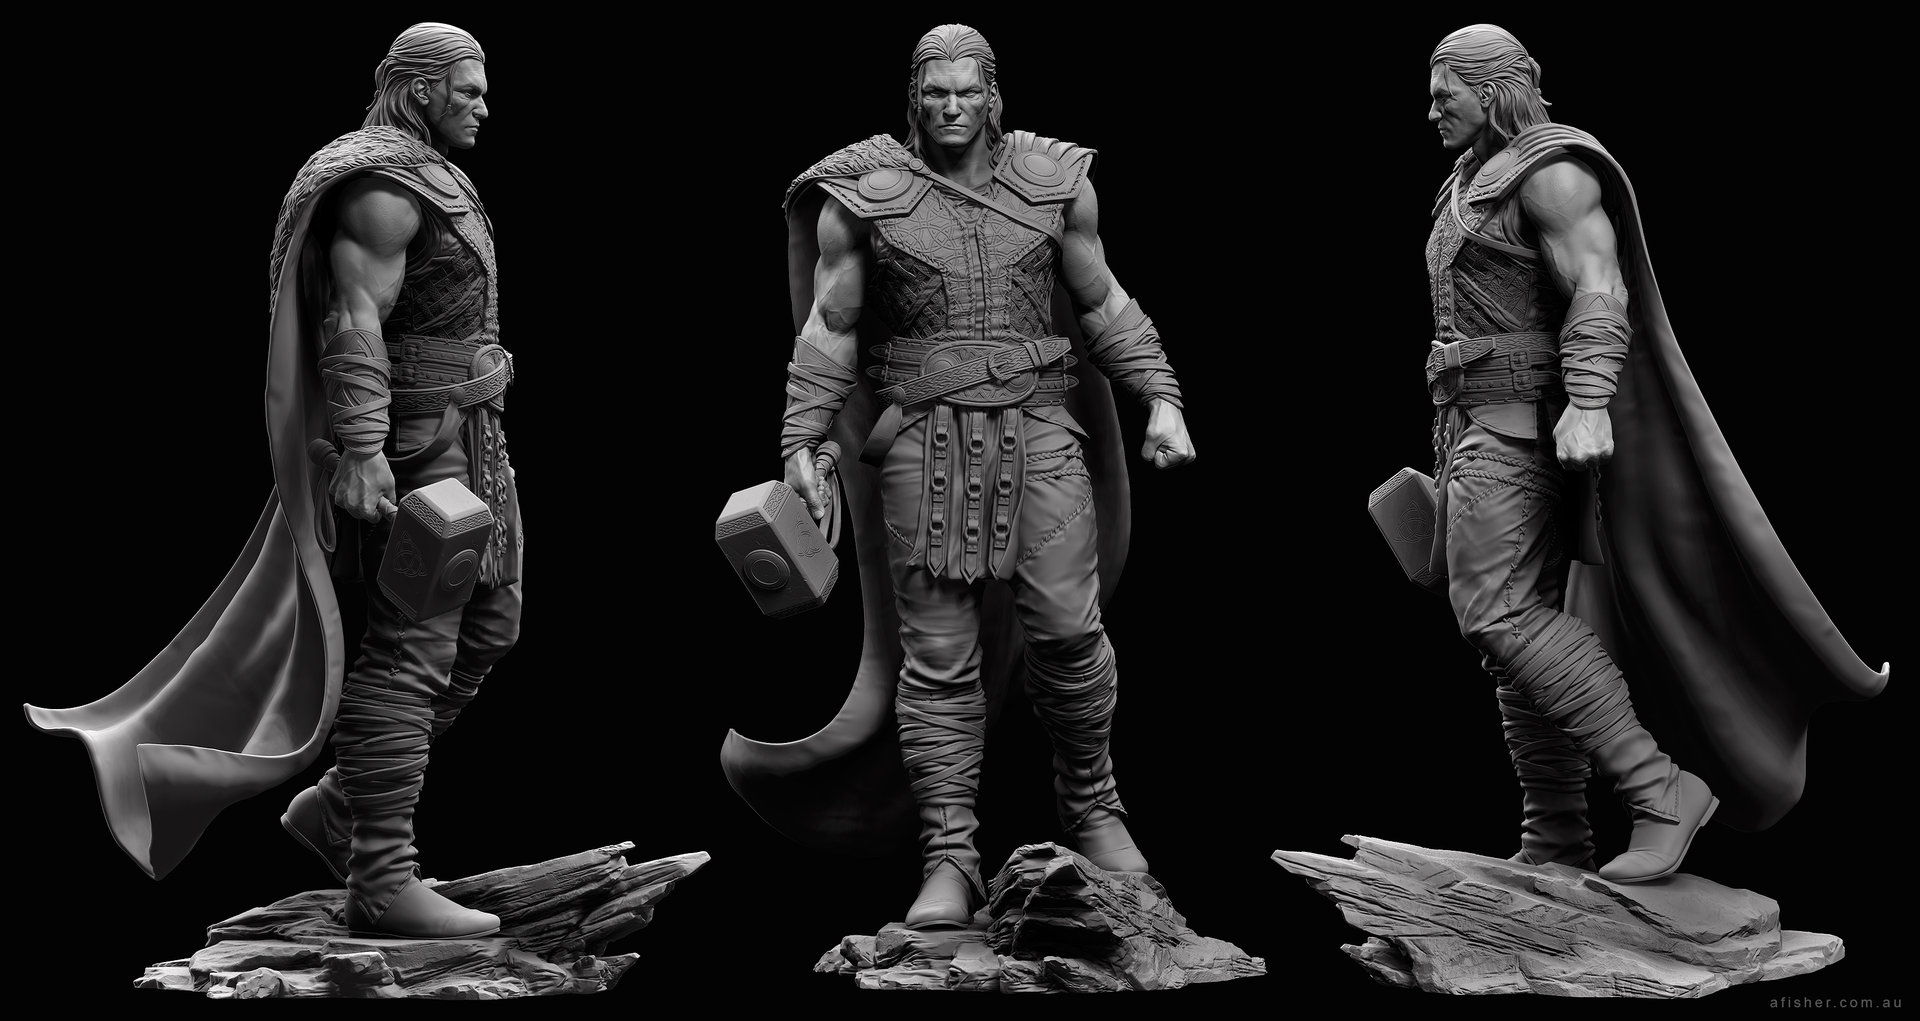 Adam fisher afisher thor sculpt01